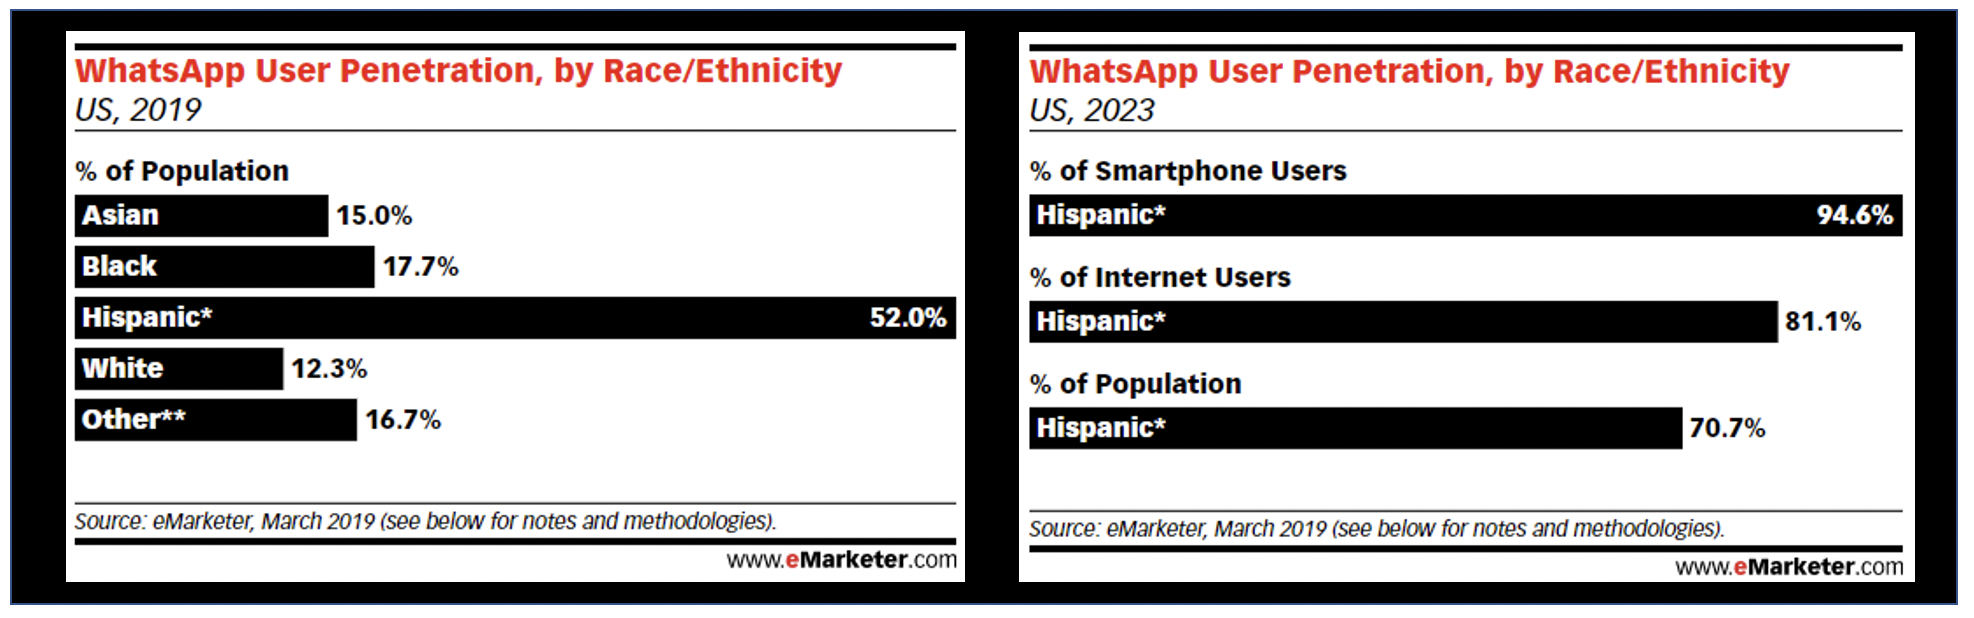 WhatsApp penetration by race and ethnicity shows high adoption in the Hispanic community